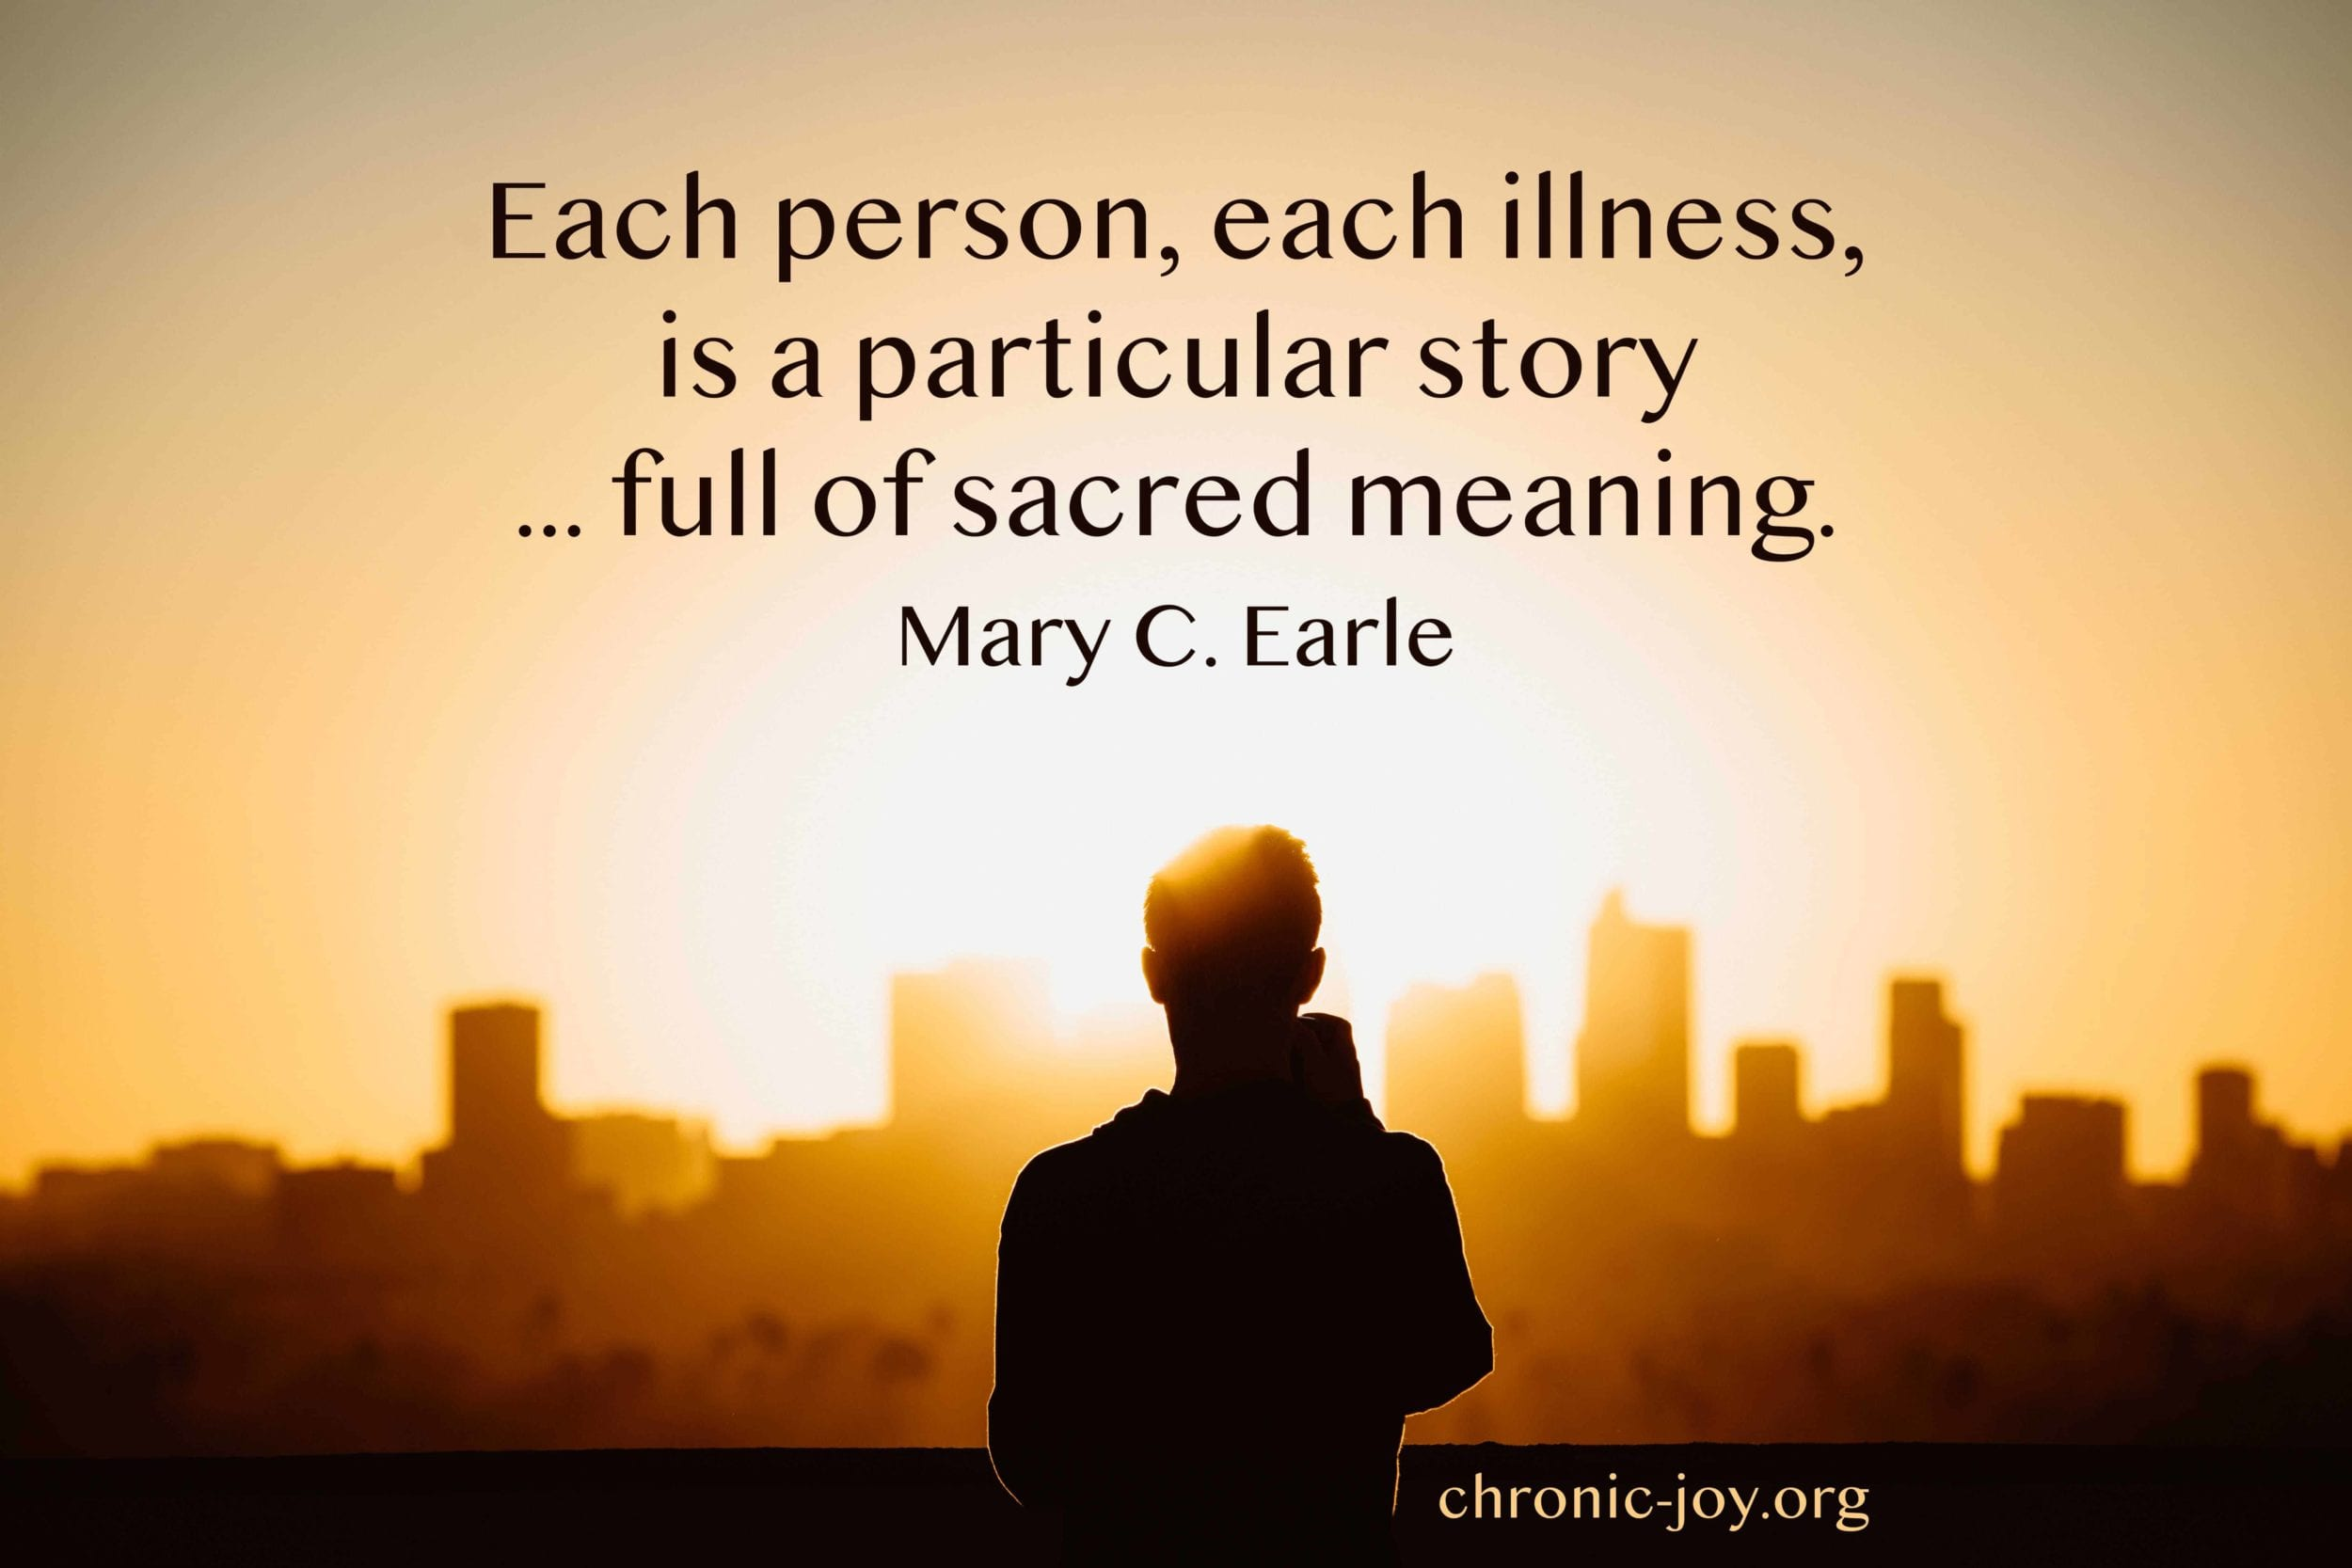 Each person, each illness, is a particular story ... full of sacred meaning. Mary C. Earle